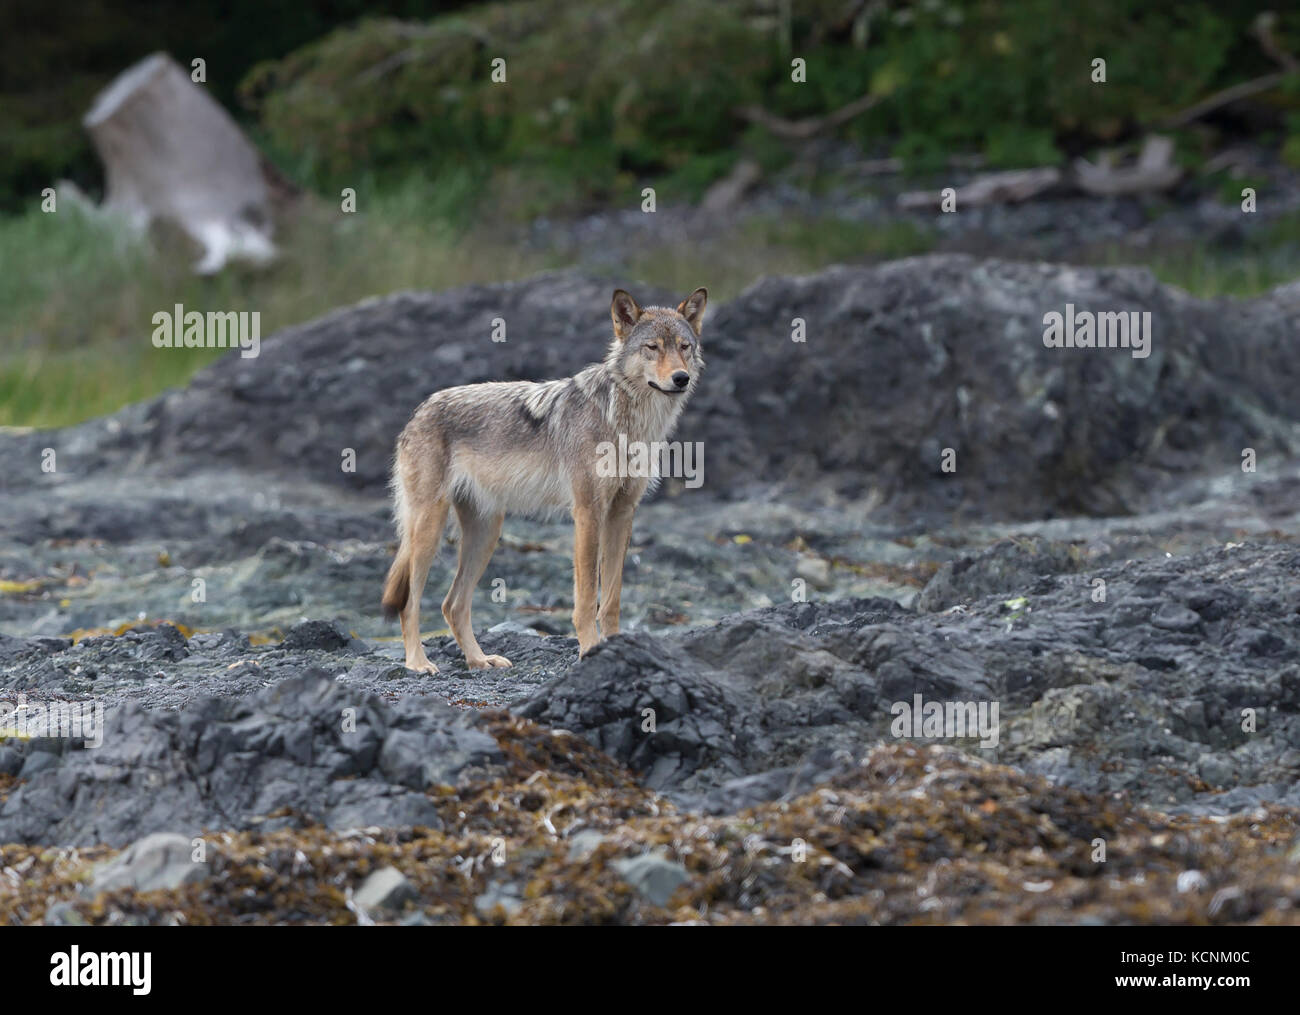 A Vancouver Island wolf pauses while walking along the shoreline on an island near Kyuquot, Vancouver Island, British - Stock Image